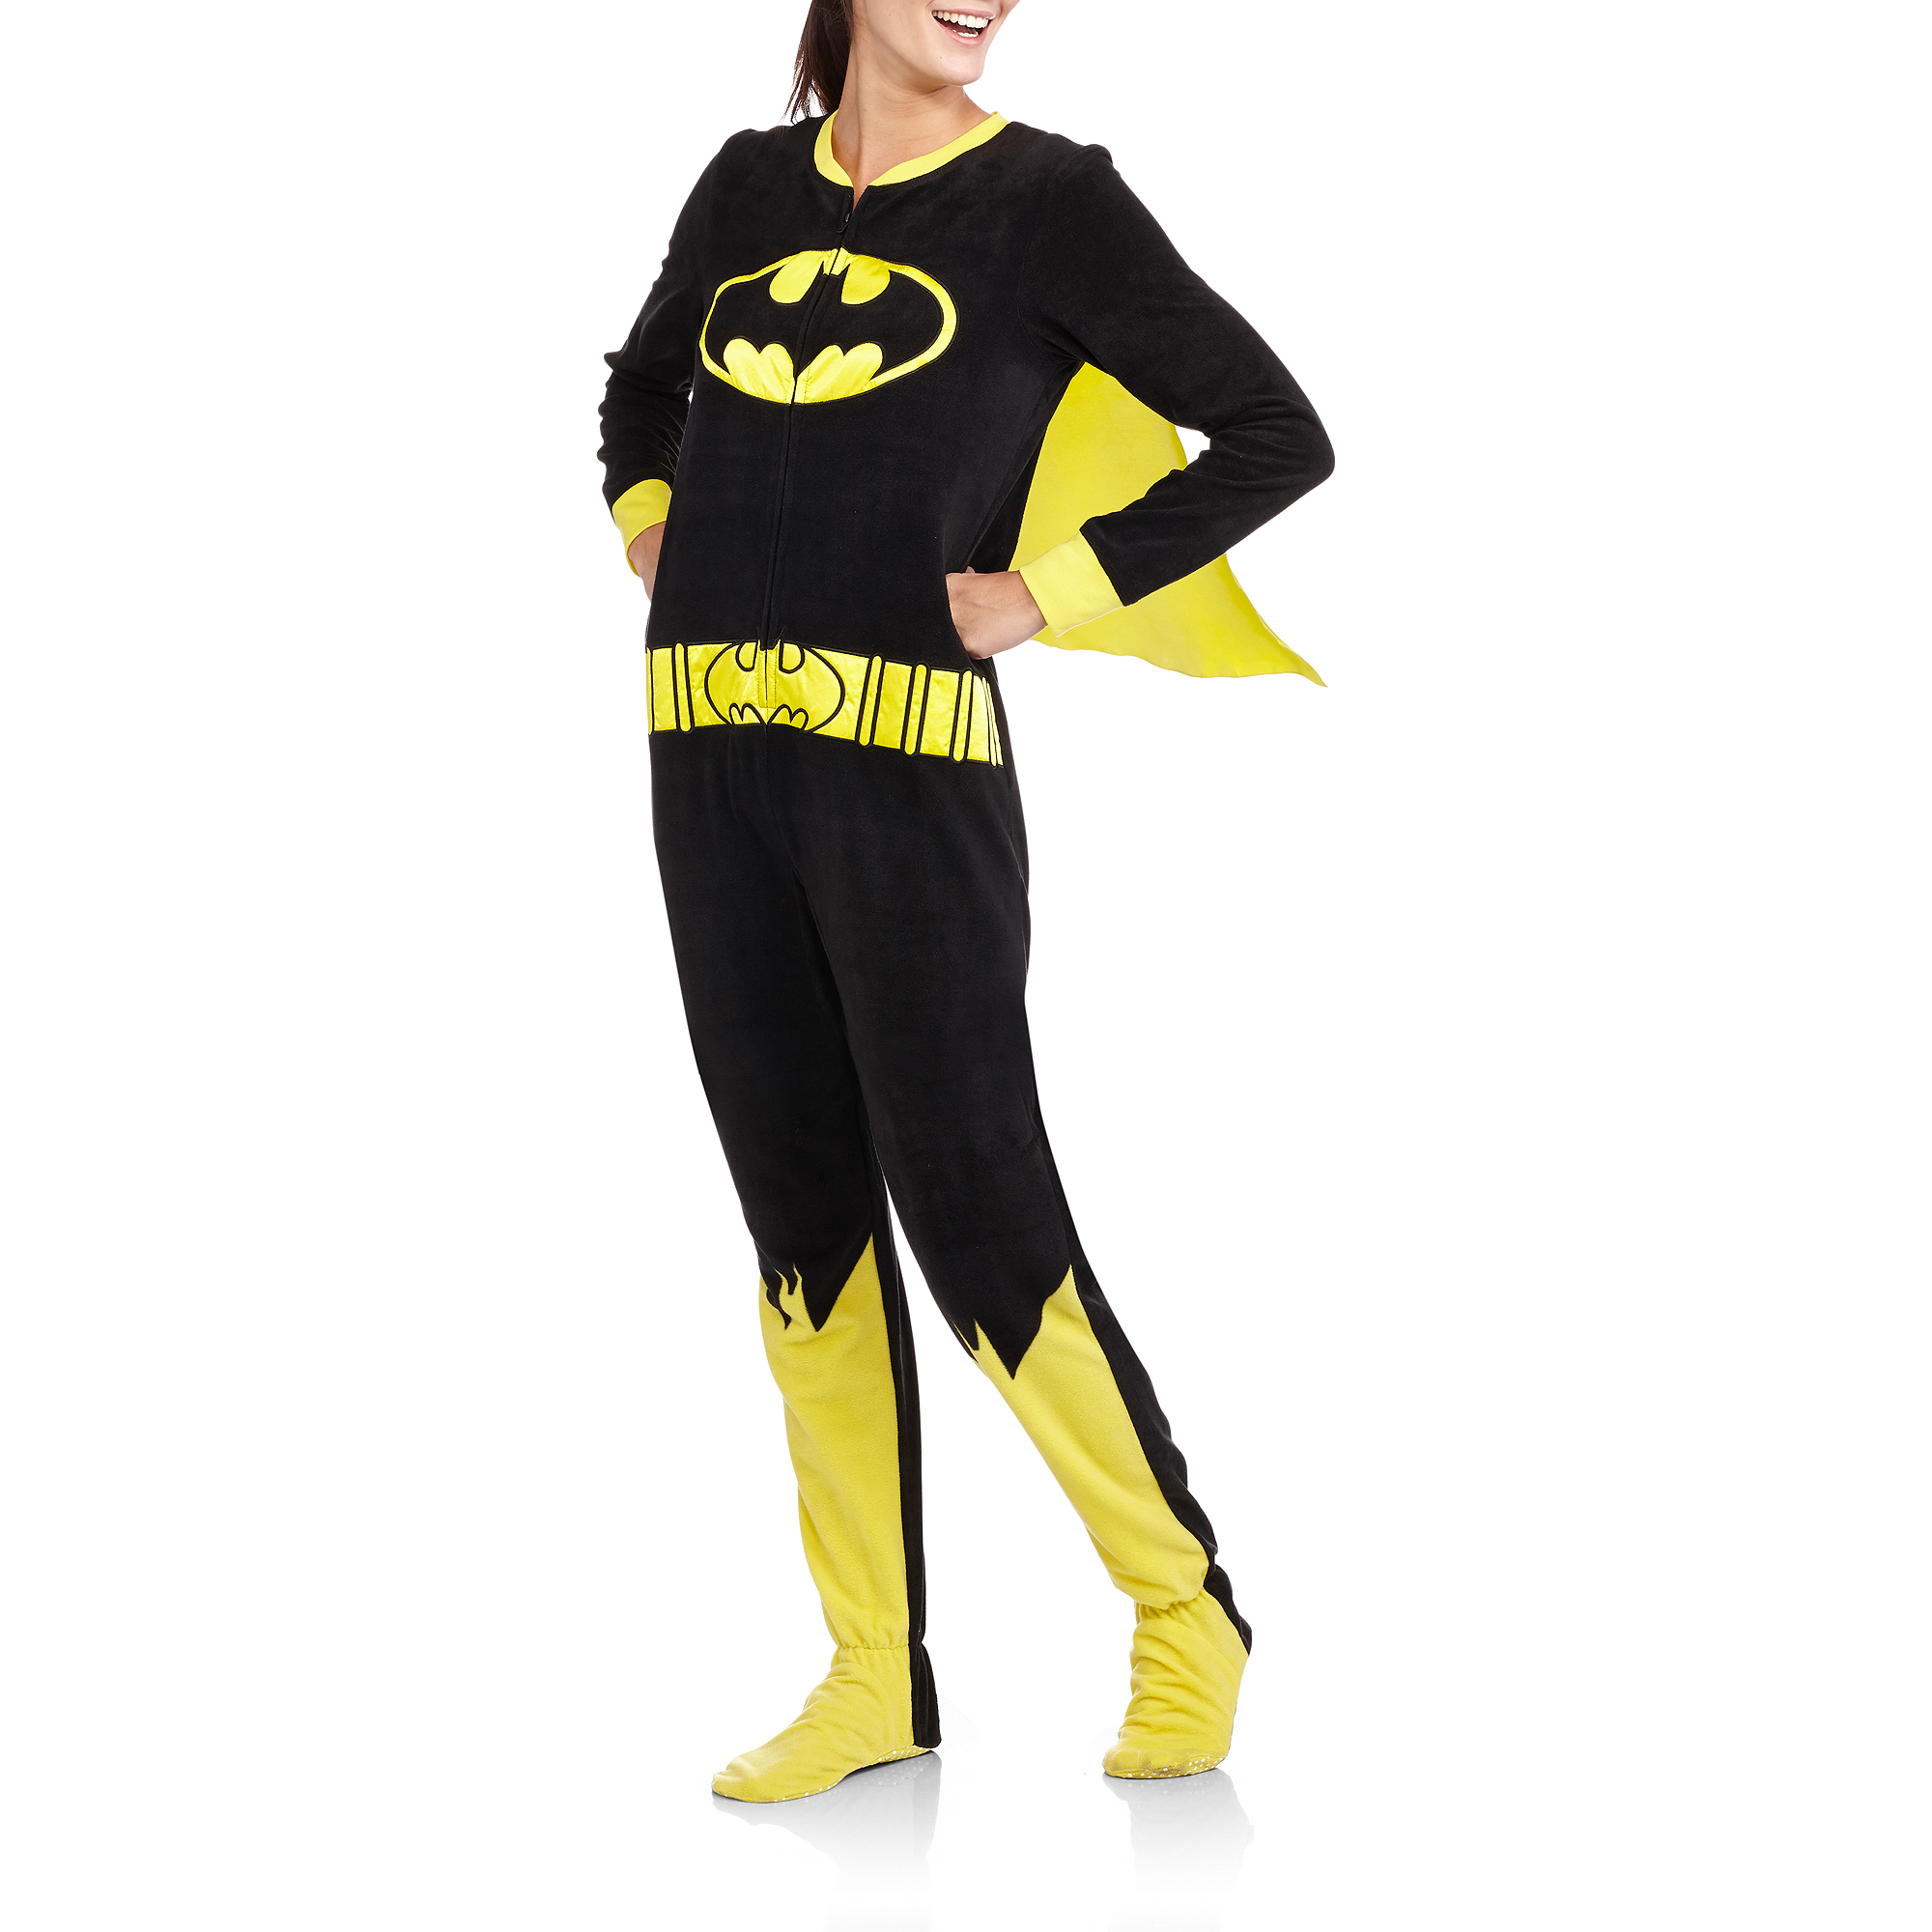 Juniors Batgirl One Piece Footed Pajamas with Cape - Walmart.com